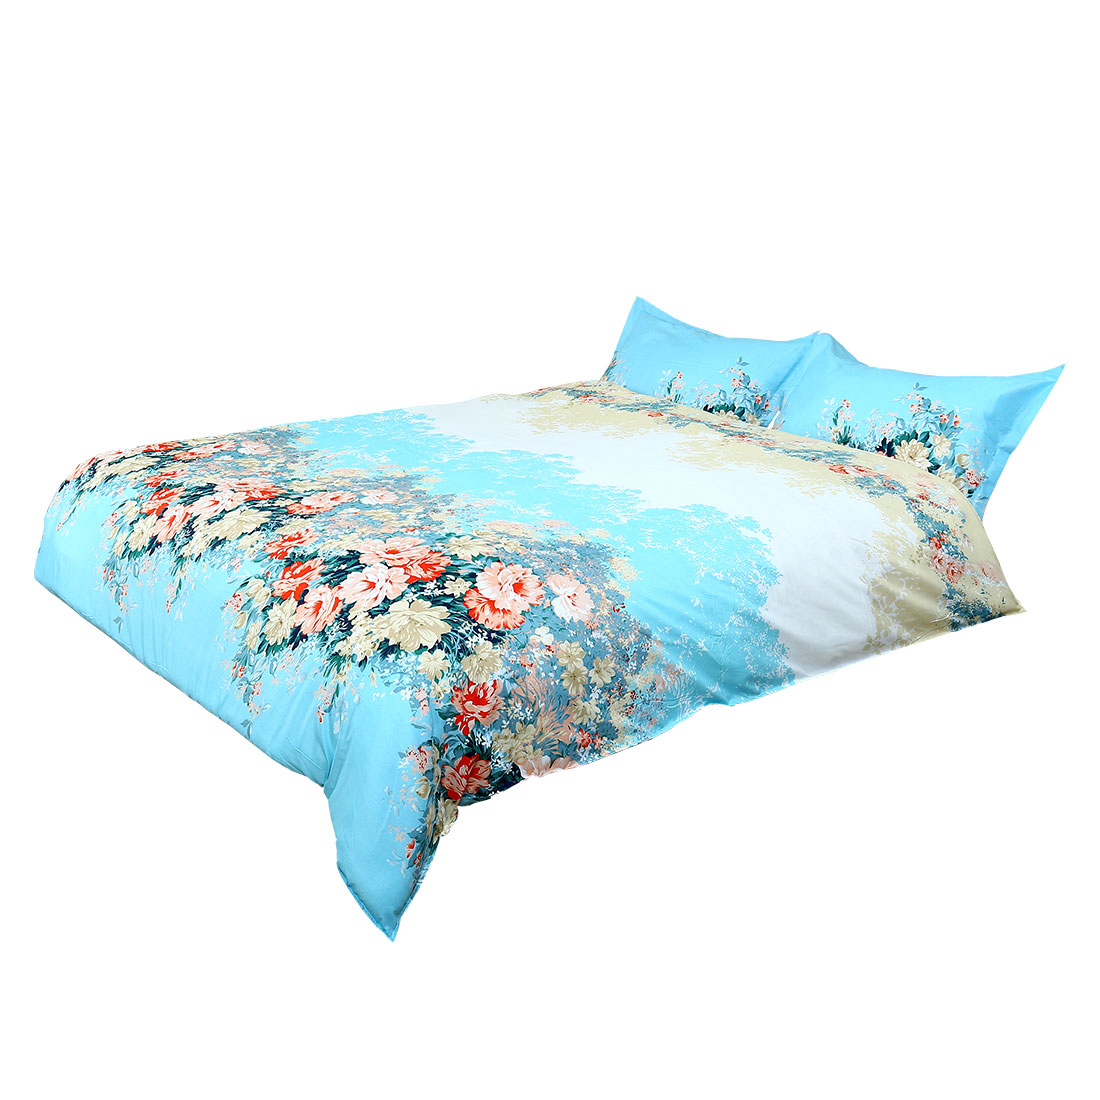 Flower Pattern Duvet Cover Pillowcase Quilt Cover Bedding Set King Size Teal